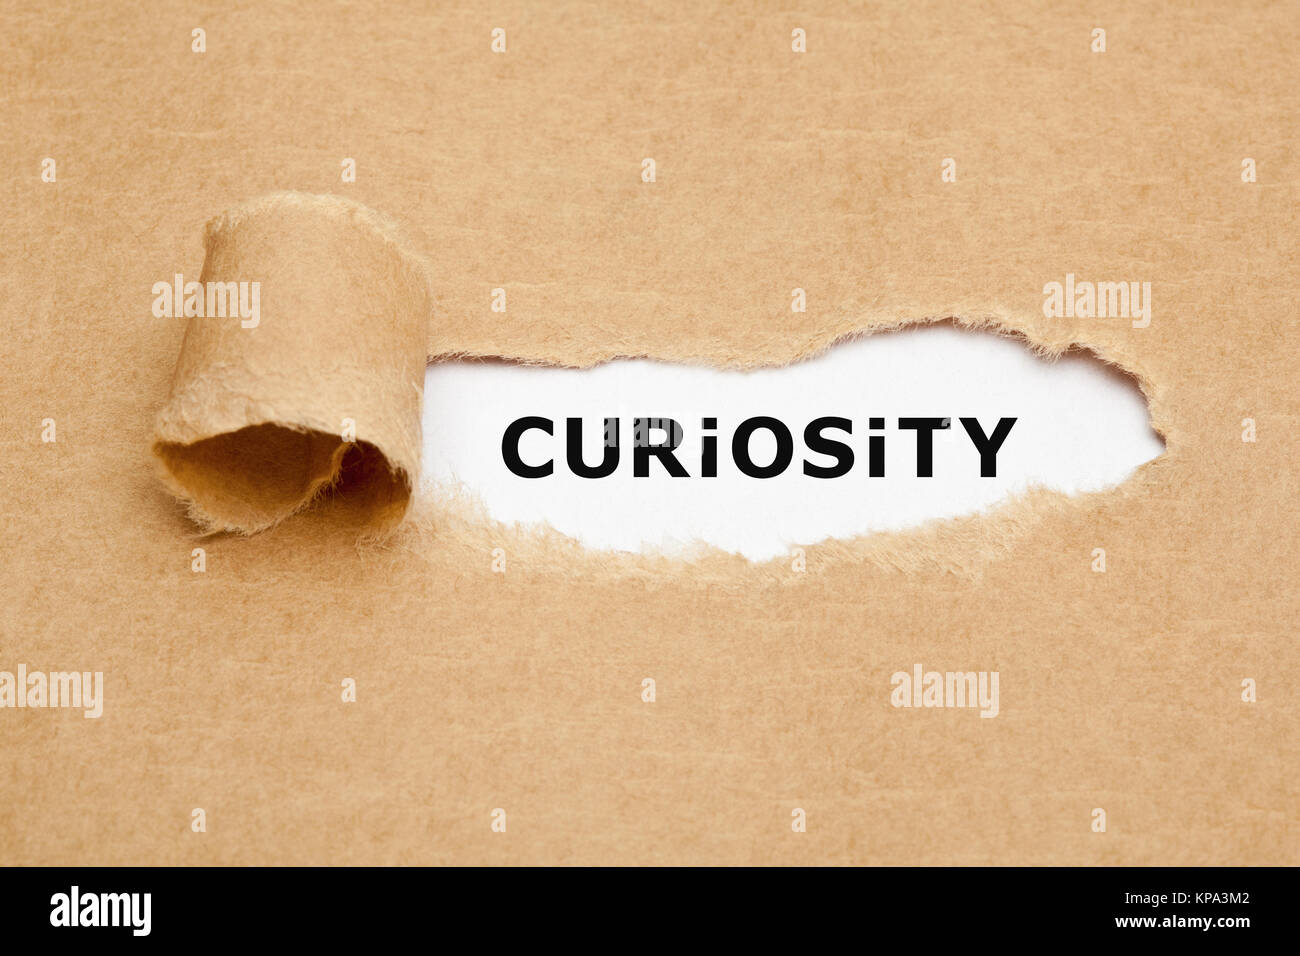 Curiosity Torn Paper Concept - Stock Image